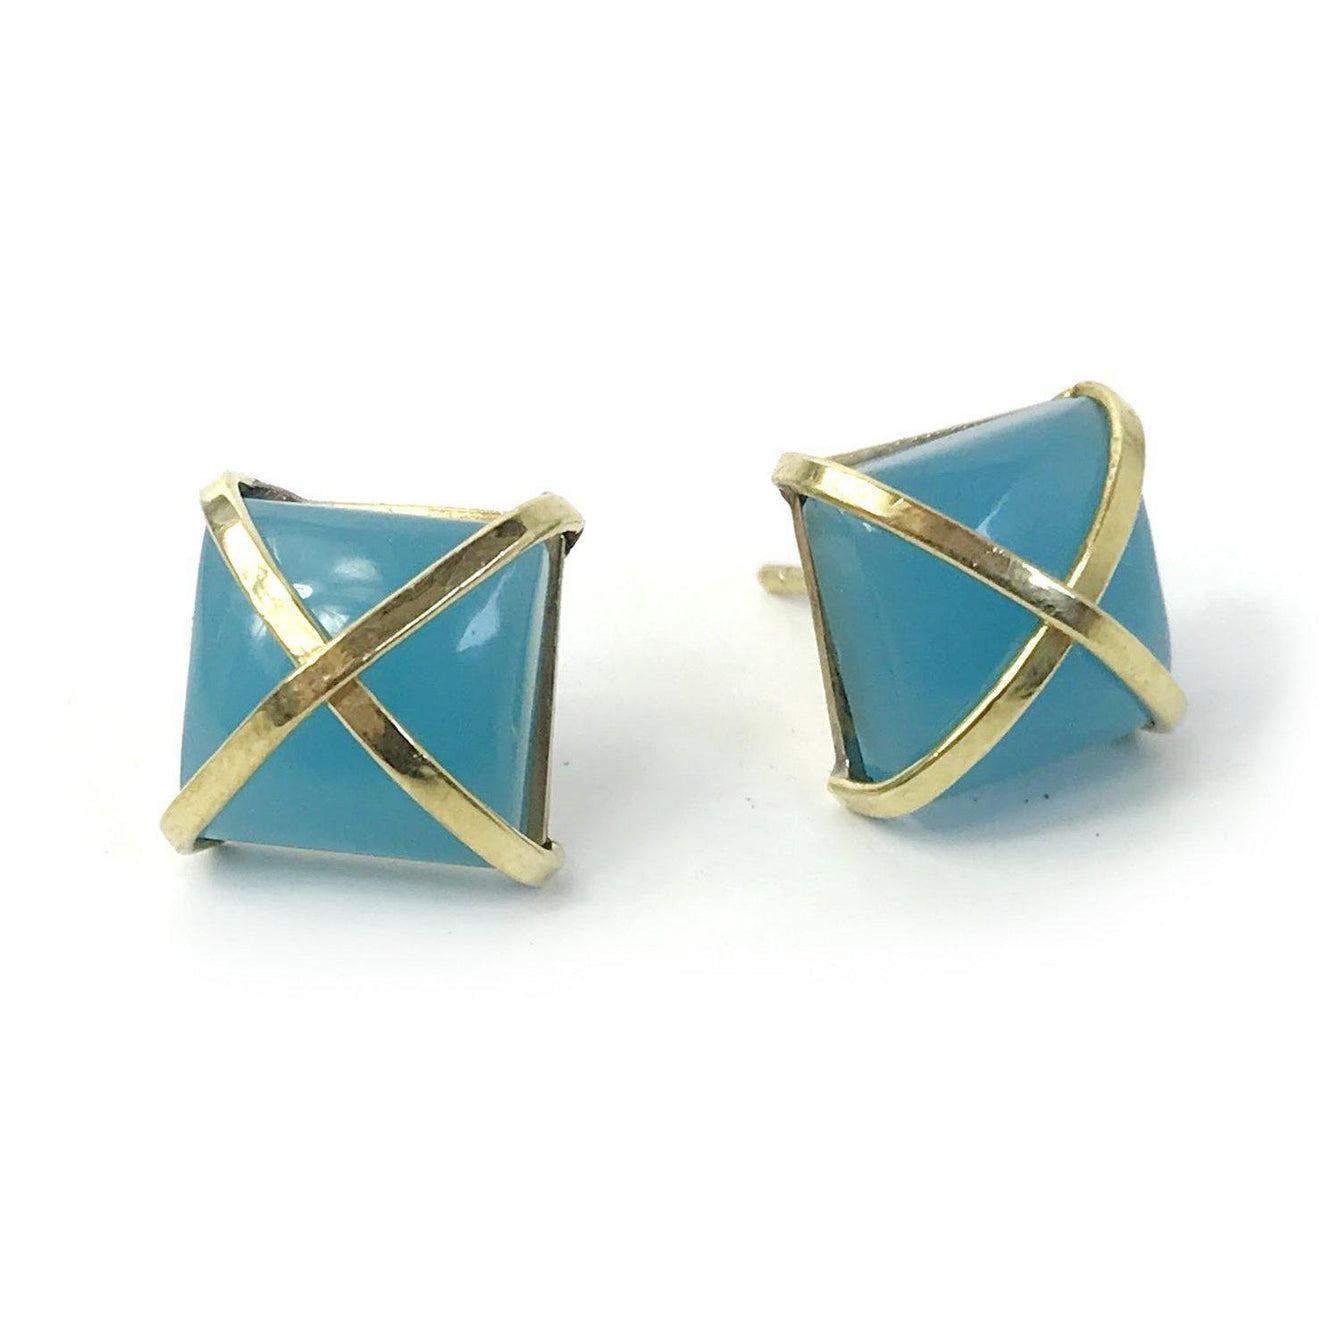 Martin 24k Gold Gemstone Criss Cross Studs-Women - Jewelry - Earrings-ADDISON WEEKS-Aquamarine-Peccadilly